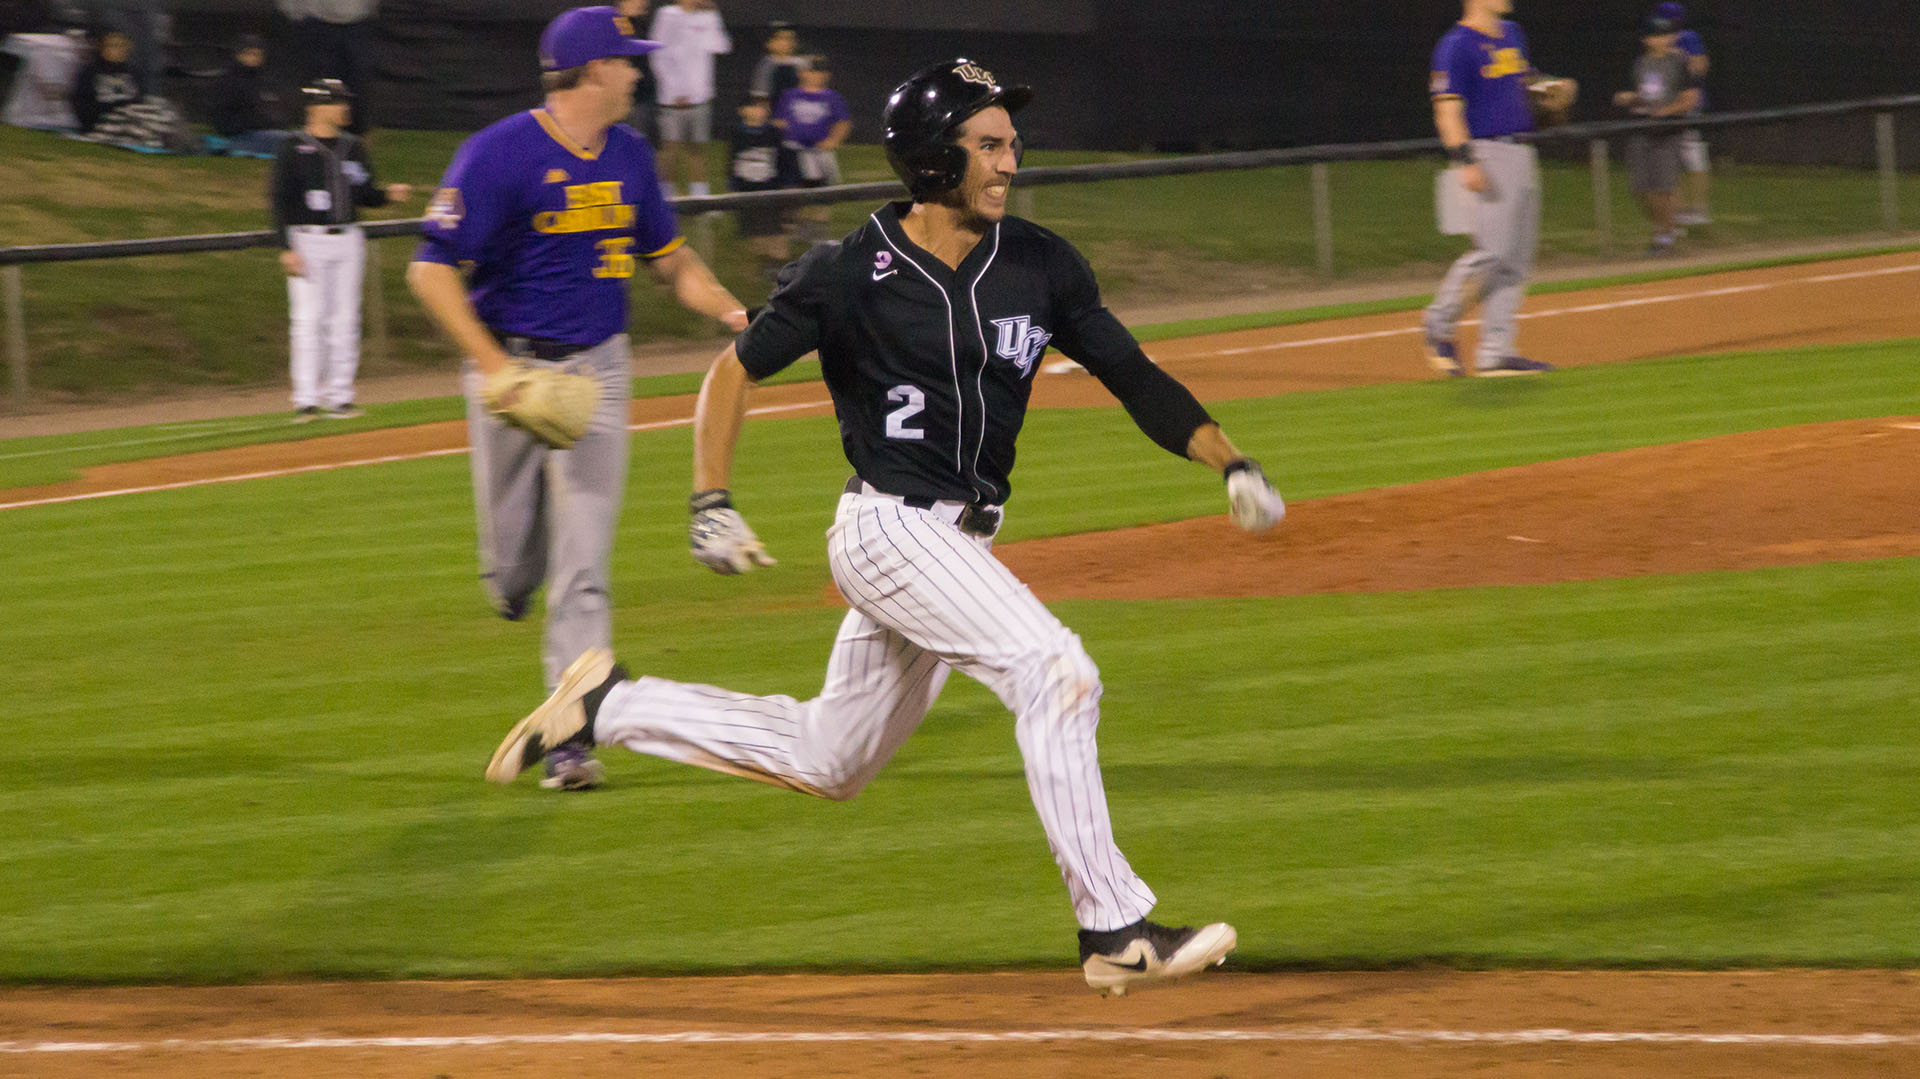 knights open conference play with convincing win over ecu — new day